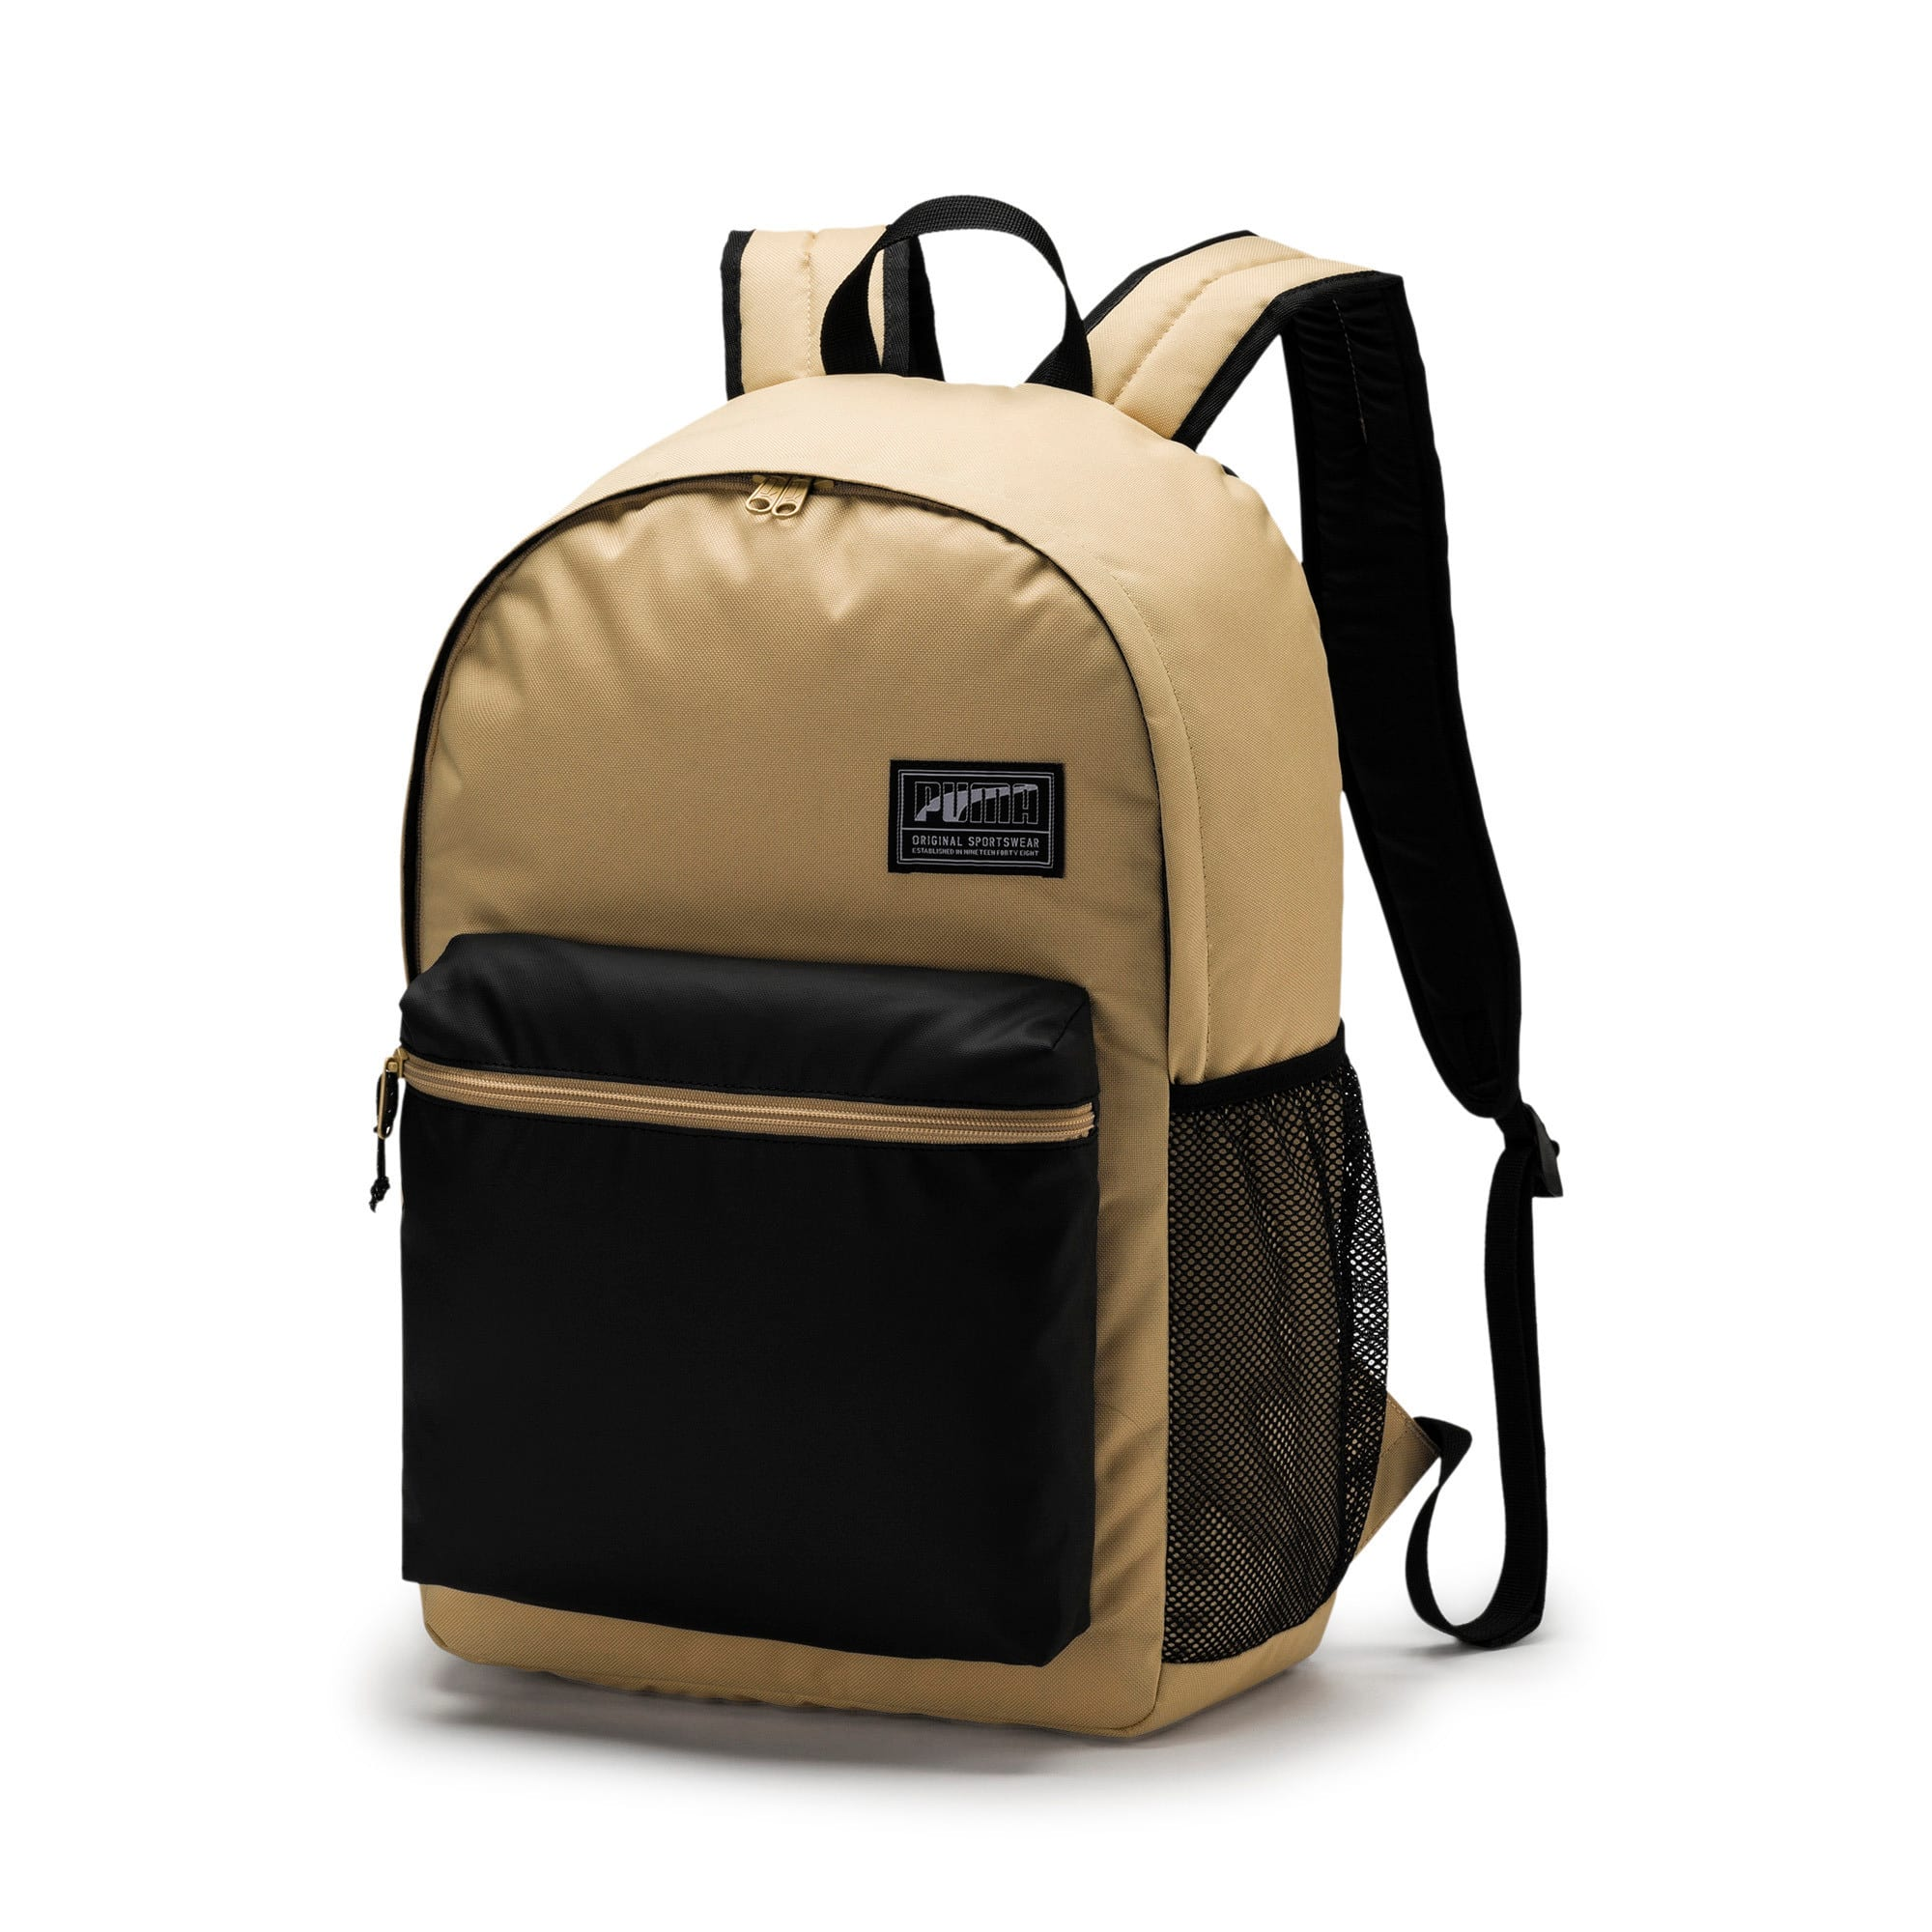 Thumbnail 1 of PUMA Academy Backpack, Taos Taupe, medium